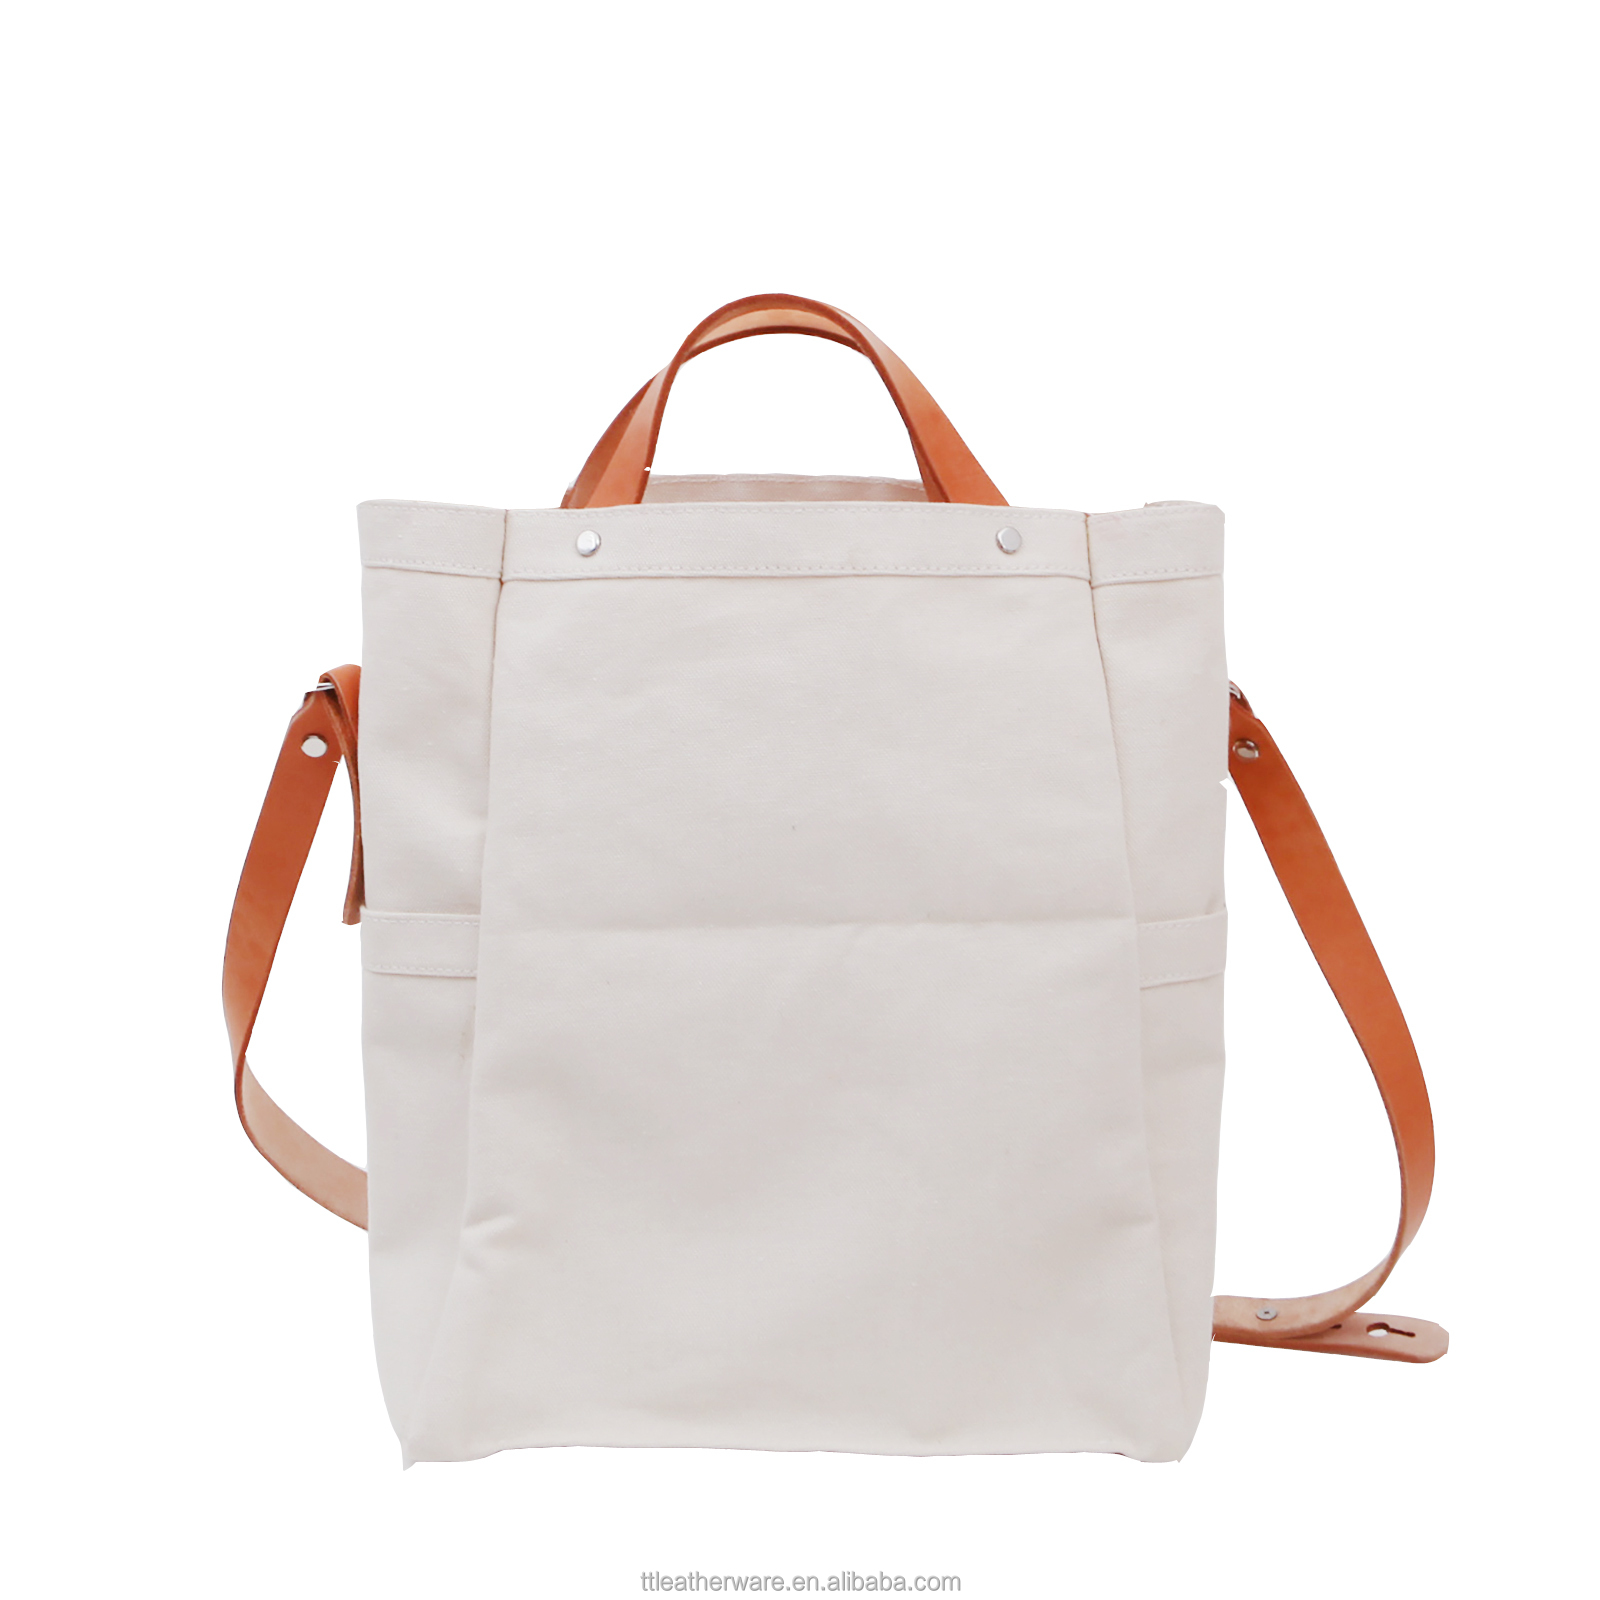 Linen Jute Canvas Tote Bag with Natural Leather Straps